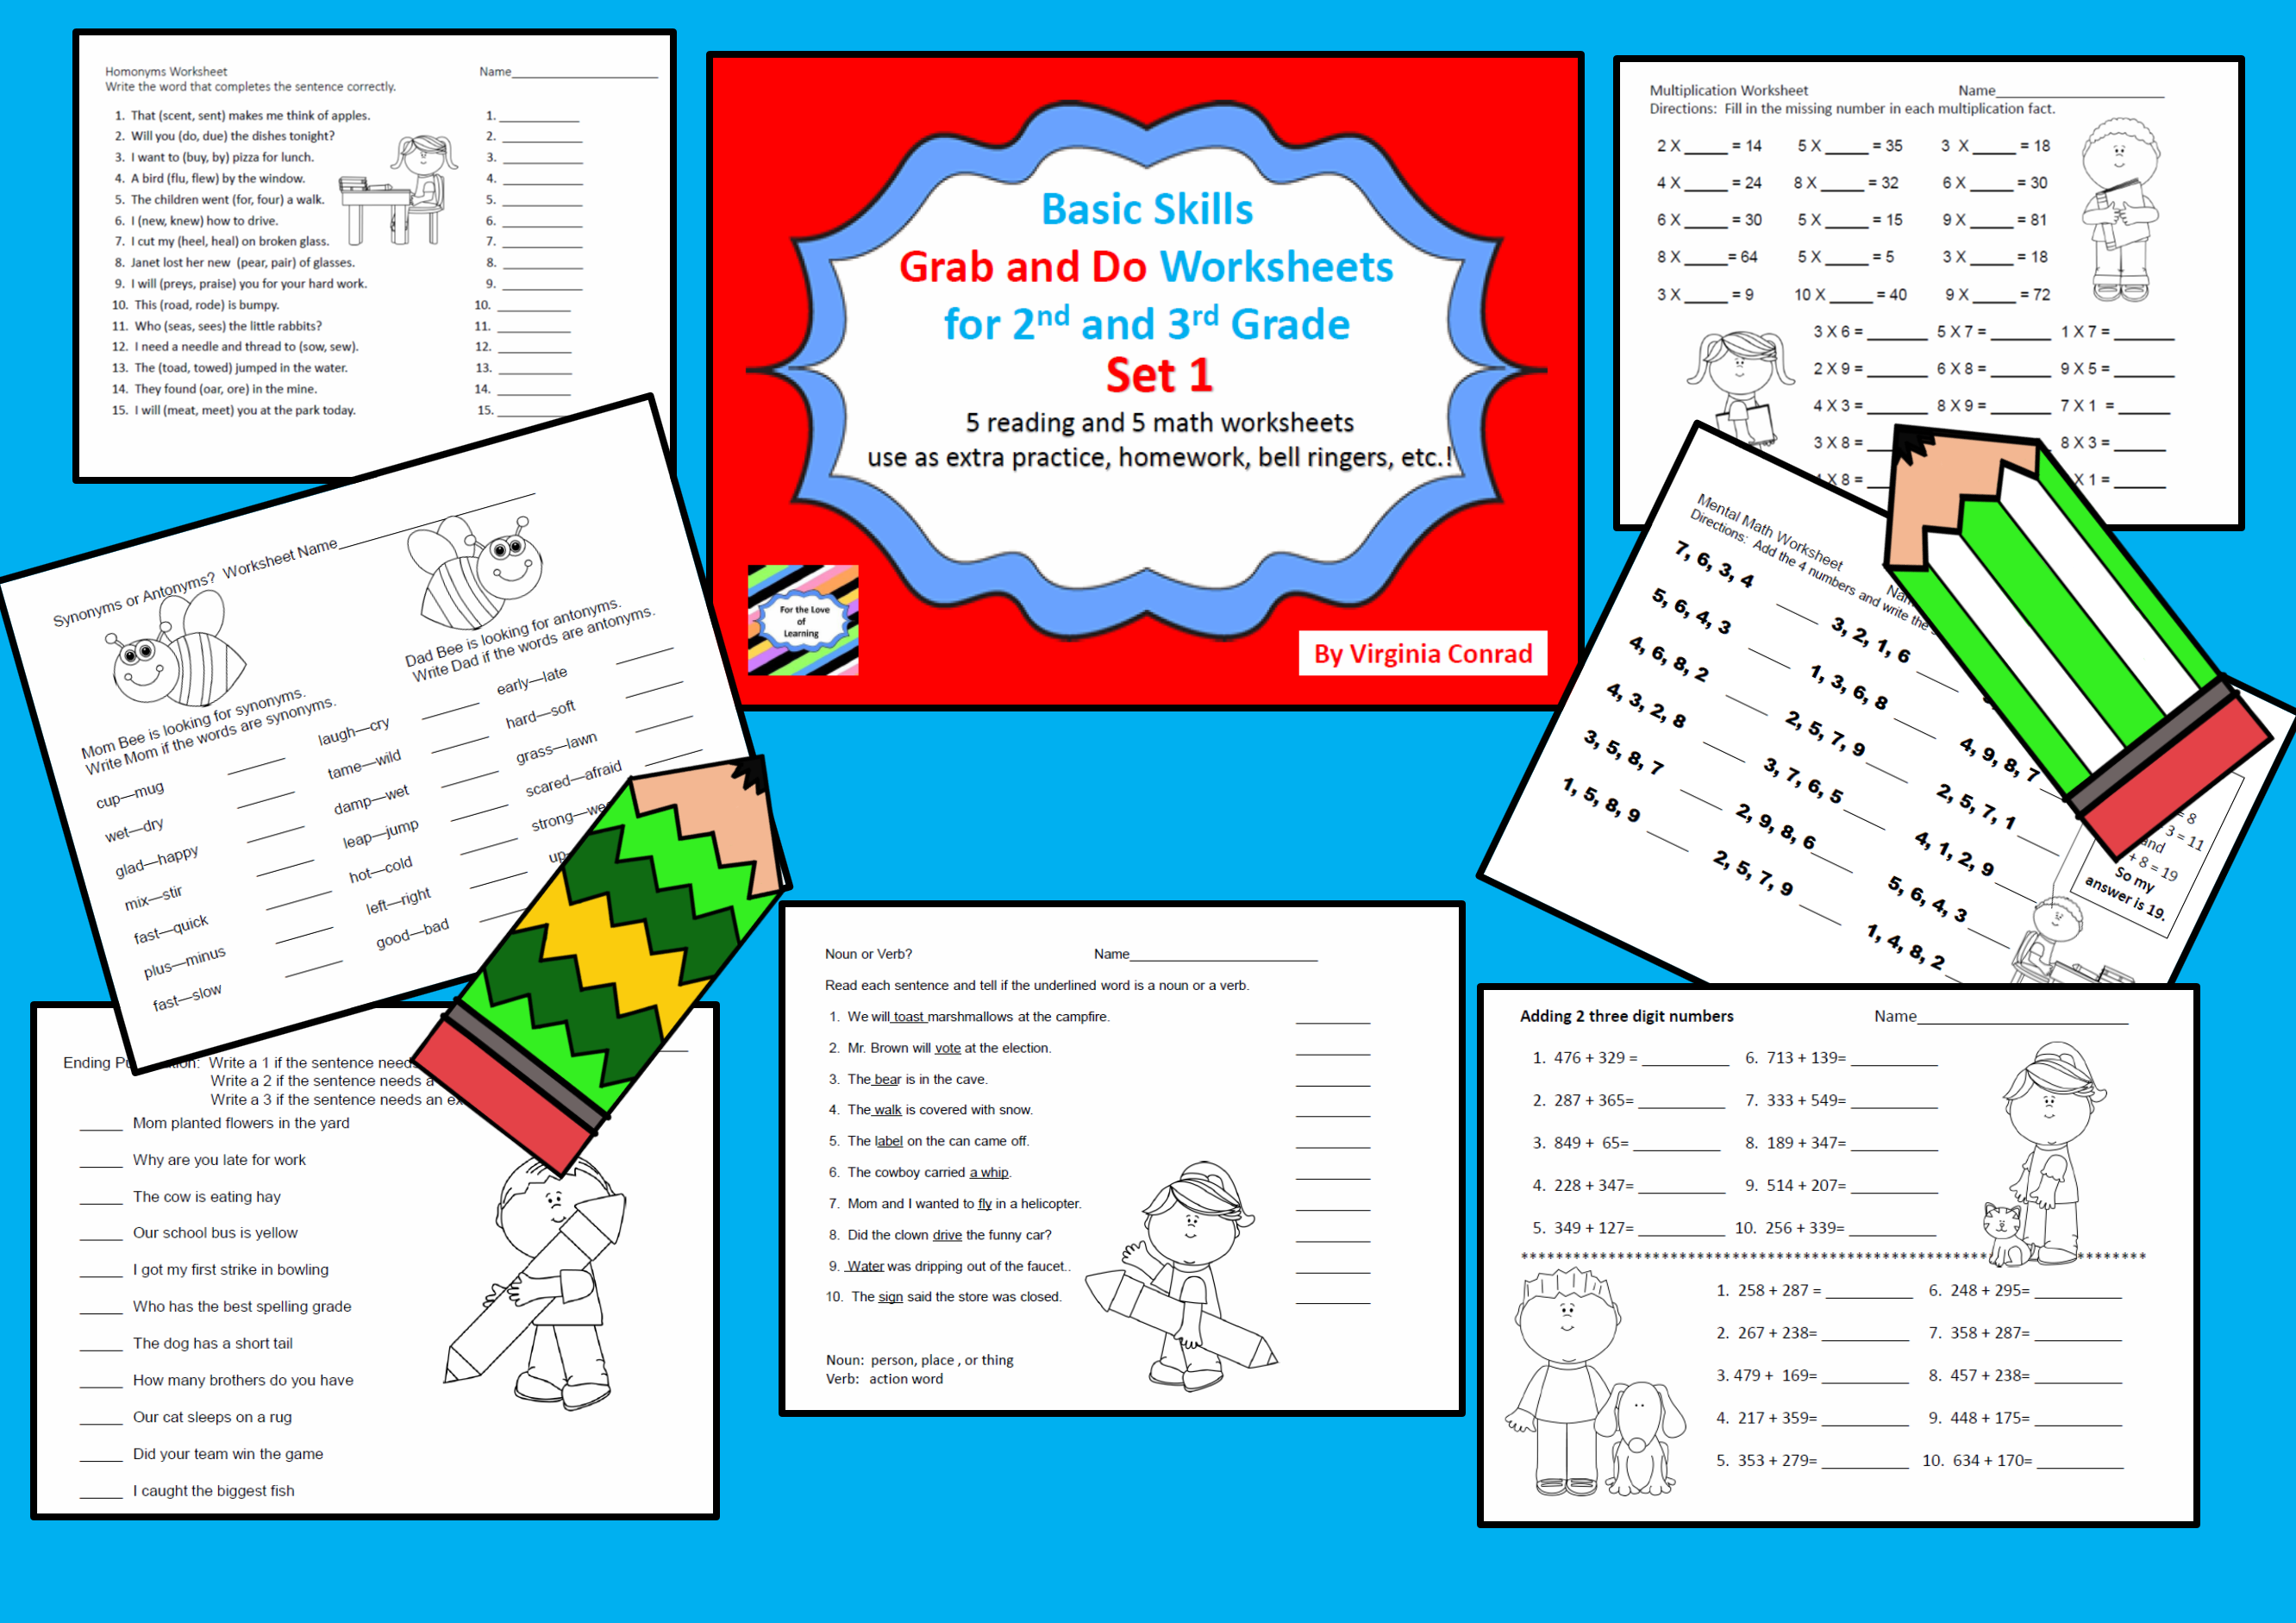 Basic Skills Grab And Do Worksheets For 2nd And 3rd Grades Set 1